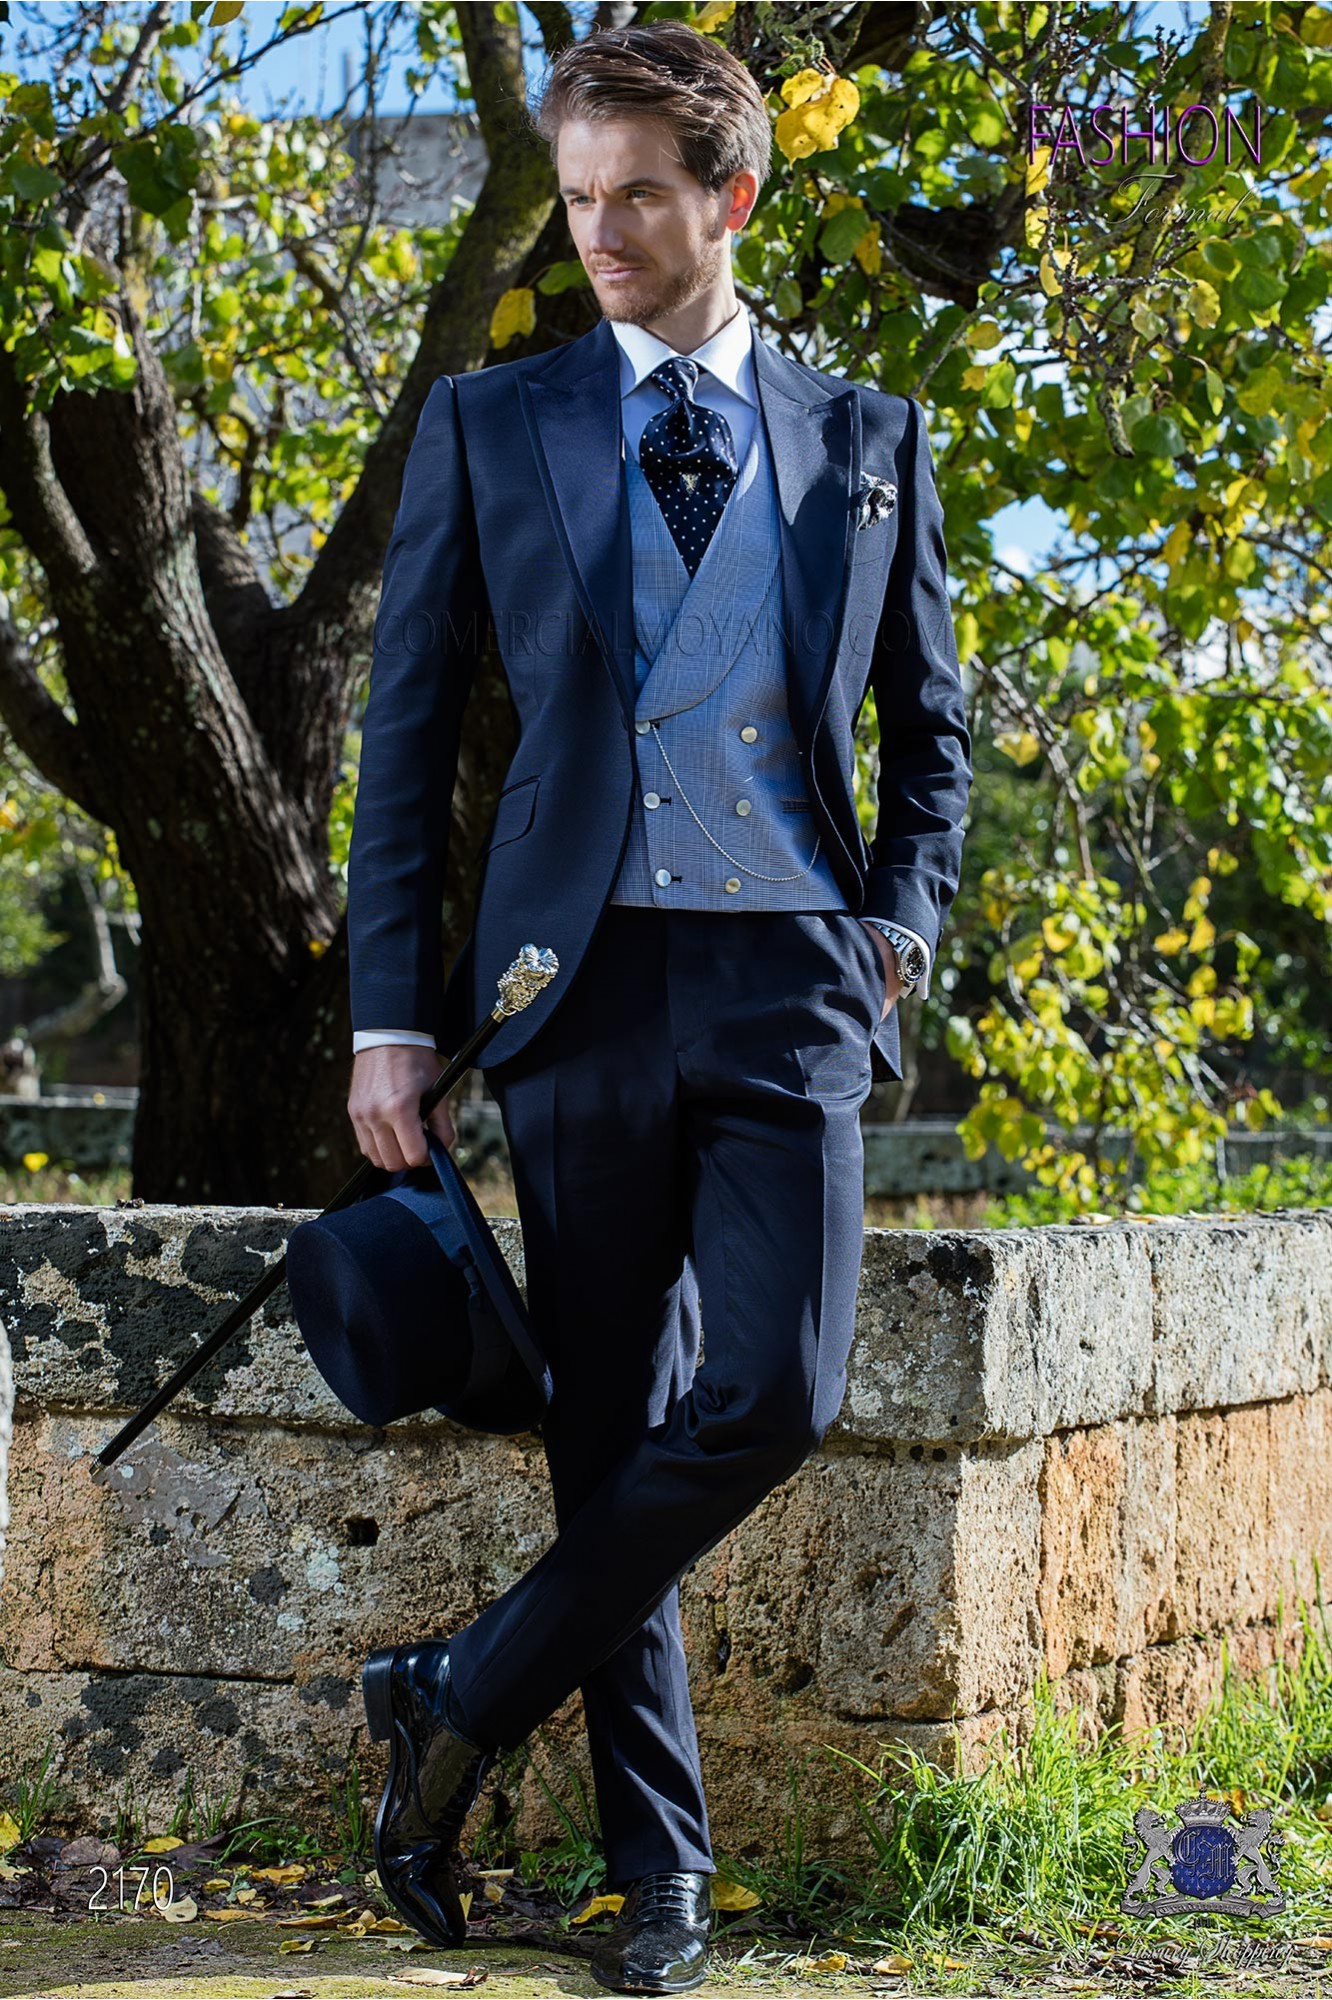 Blue Italian wedding suit Slim stylish cut. Peak lapel with contrast fabric piping. Made from wool and acetate fabric